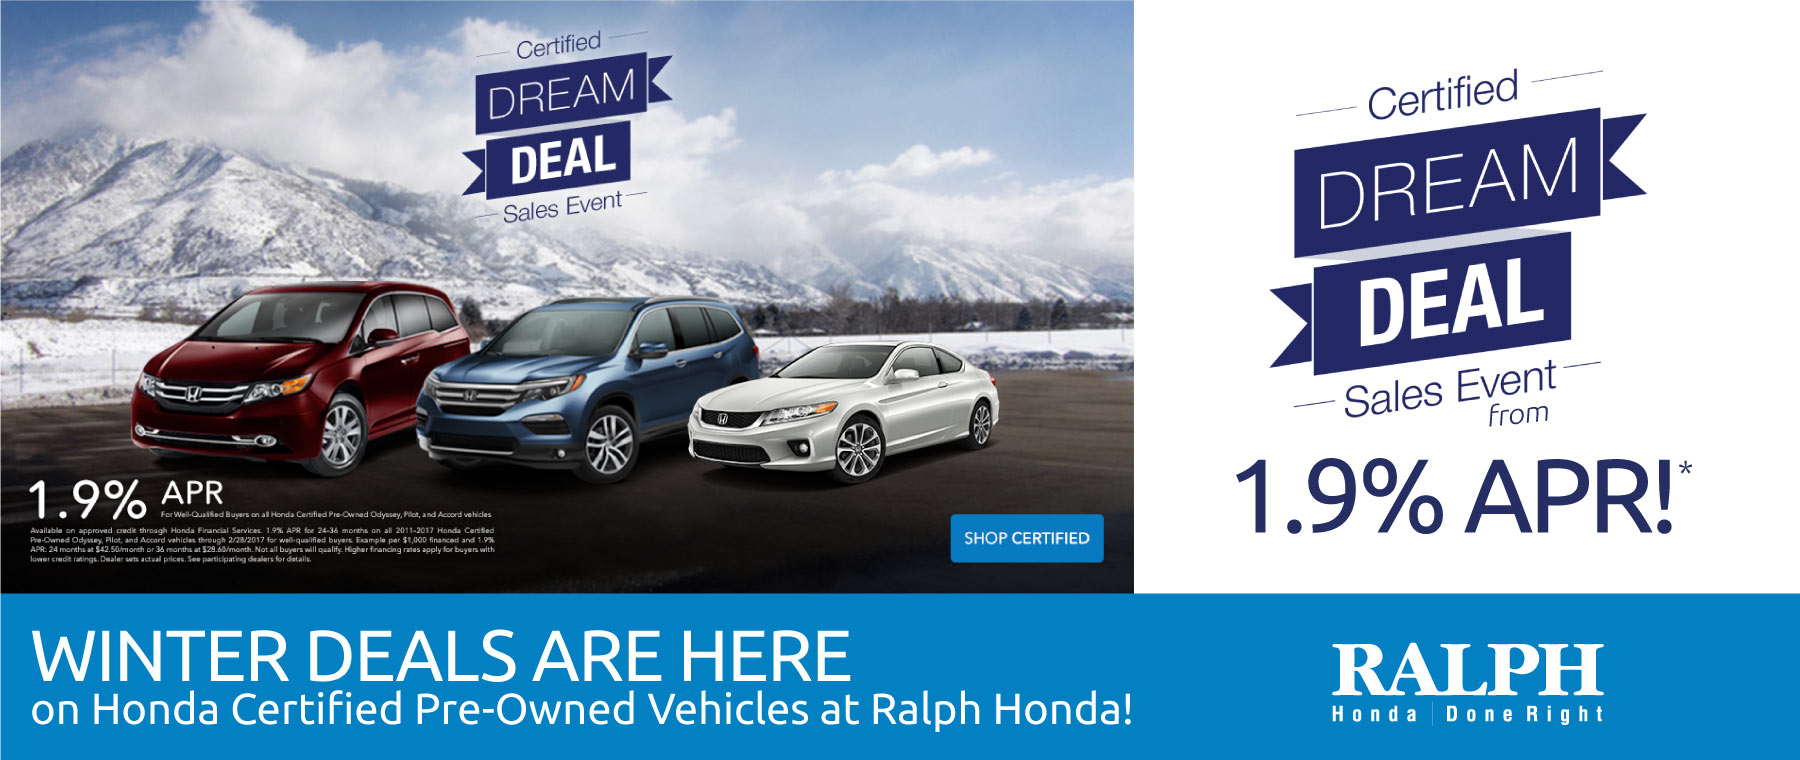 2017-01_HPCV-Dream-Deals